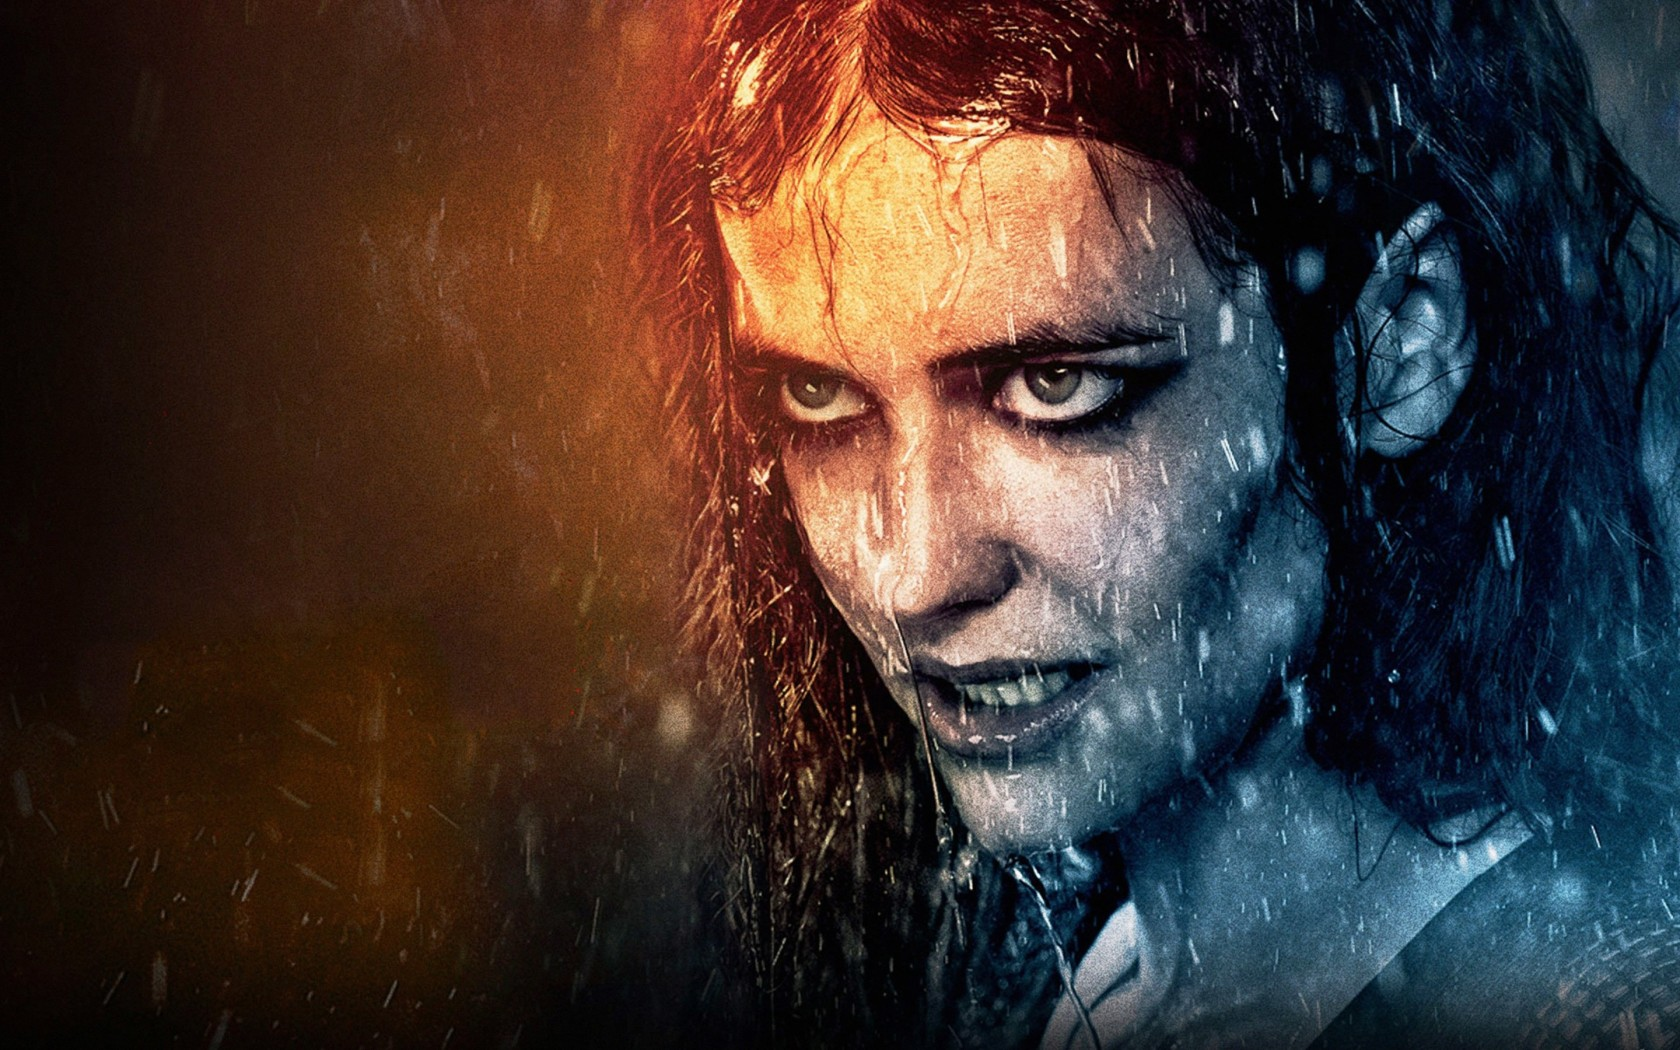 Eva Green In 300 Rise Of An Empire Wallpaper for Desktop 1680x1050